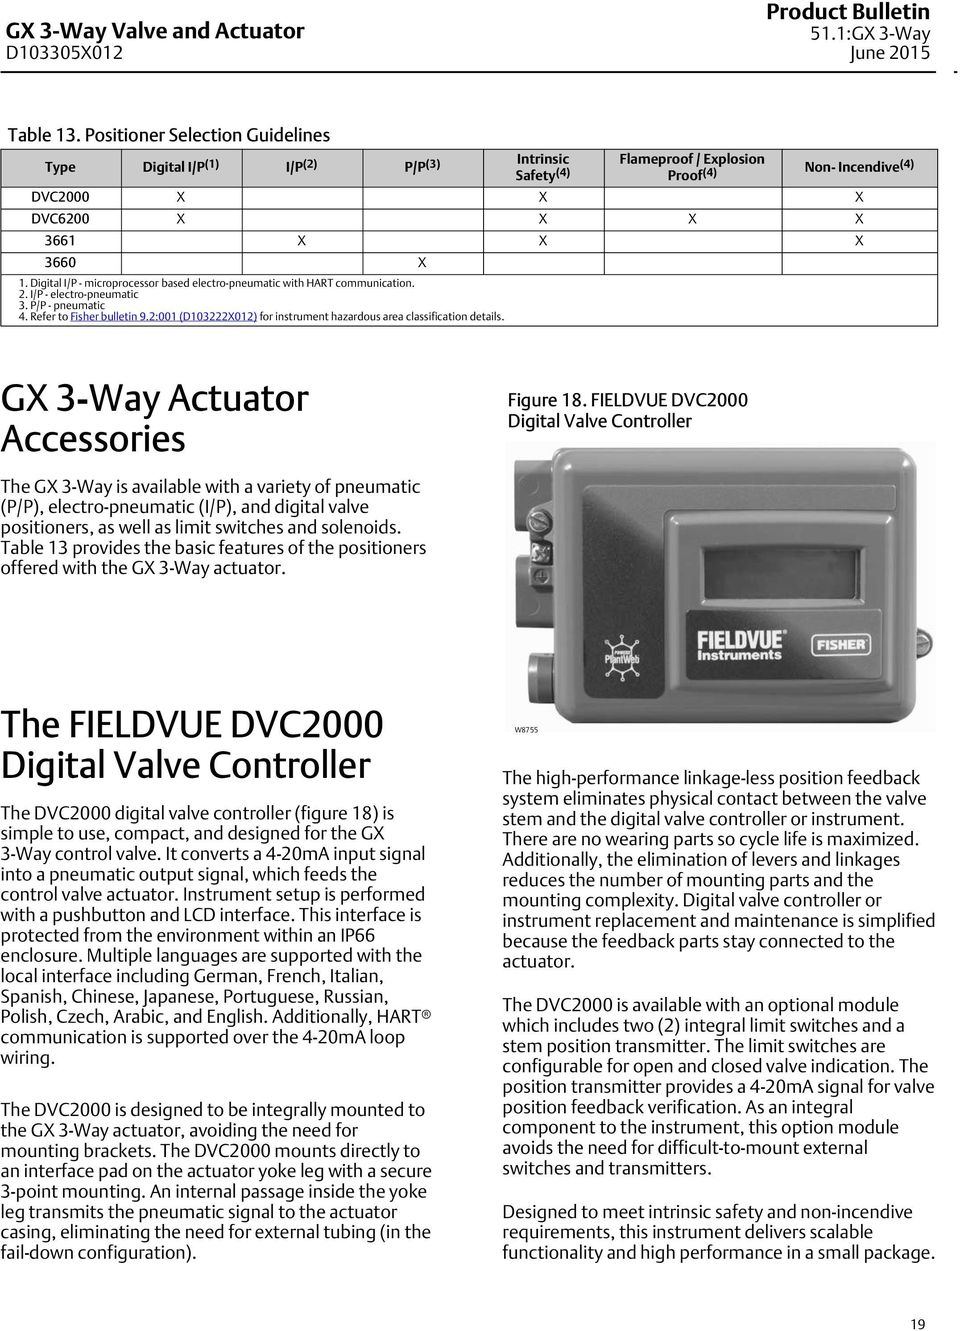 Digital I/P - microprocessor based electro-pneumatic with HART communication. 2. I/P - electro-pneumatic 3. P/P - pneumatic 4. Refer to Fisher bulletin 9.